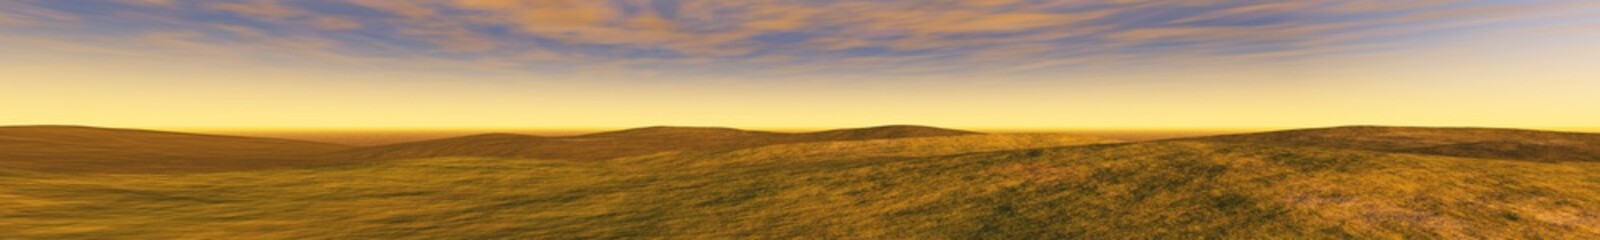 panorama of the hills and the sky, the light above the ground, banner.